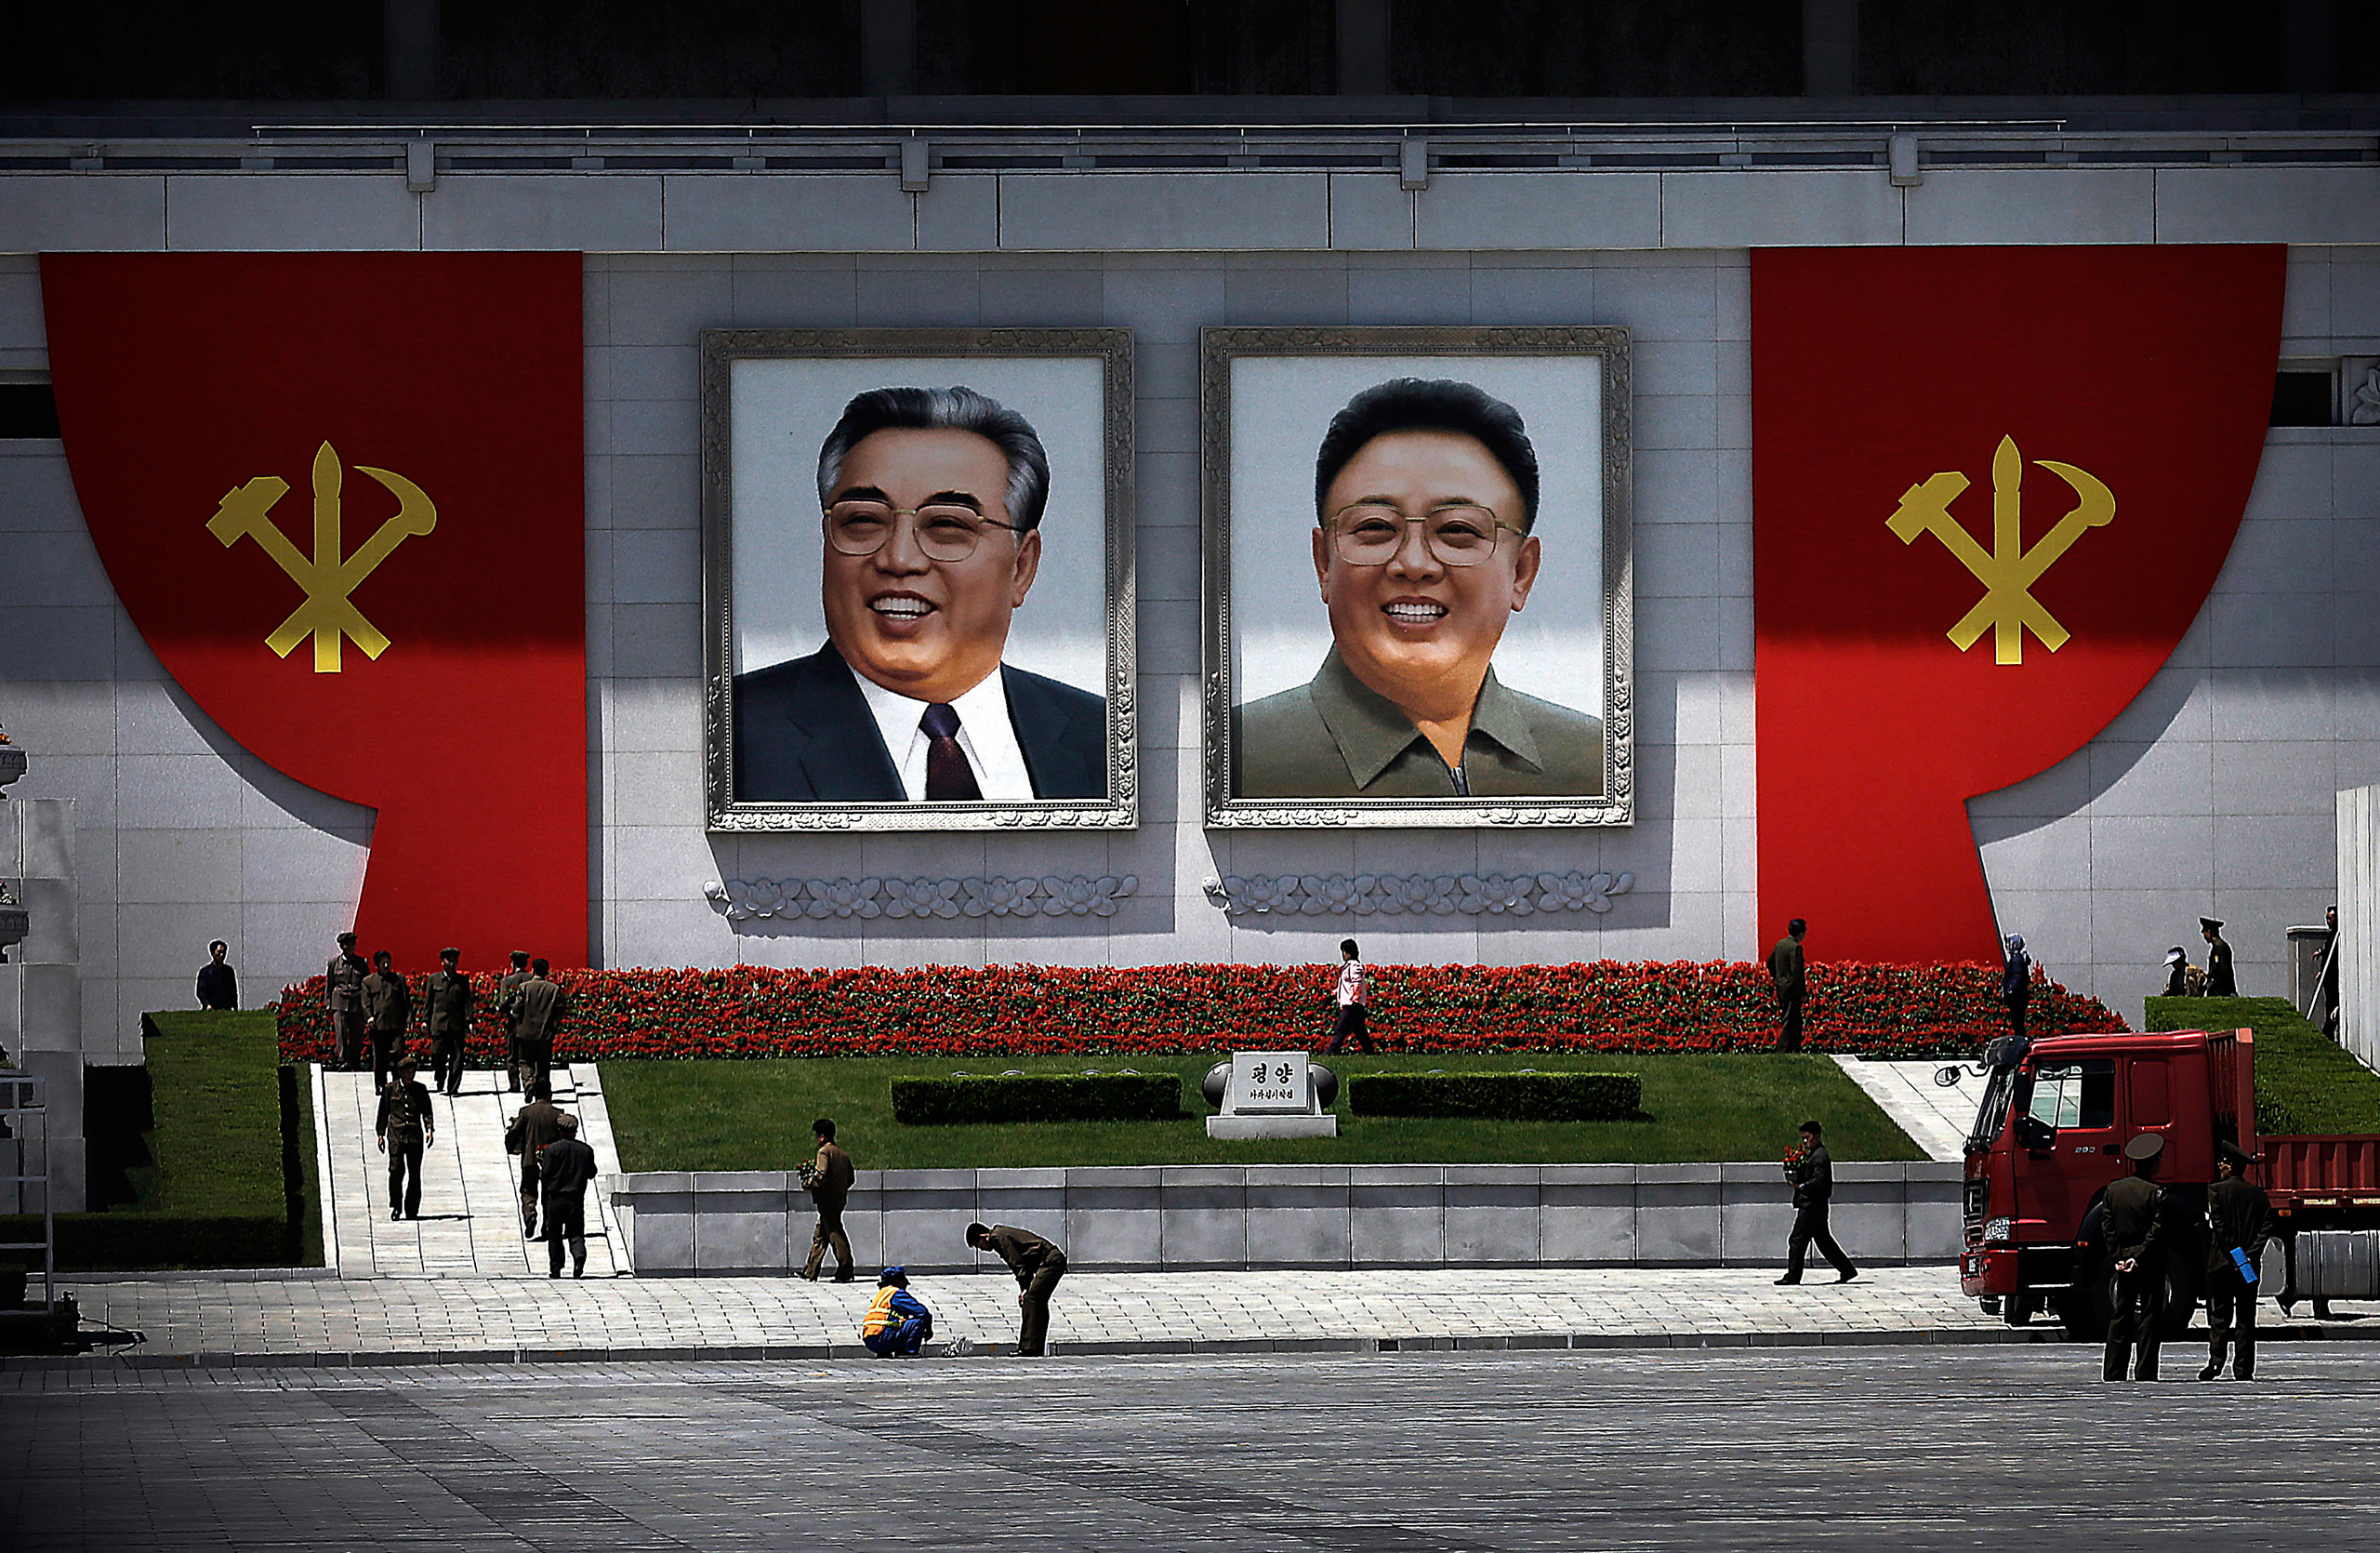 The ruling Workers' Party symbols are erected by the portraits of the late North Korean leaders Kim Il Sung, left, and Kim Jong Il while workers decorate the vicinity with flowers at the Kim Il Sung Square in Pyongyang on May 7, 2016. North Korean leader Kim Jong Un hailed his country's recent nuclear test to uproarious applause as he convened the first full congress of its ruling party since 1980, an event intended to showcase the North's stability and unity in the face of tough international sanctions and deepening isolation.